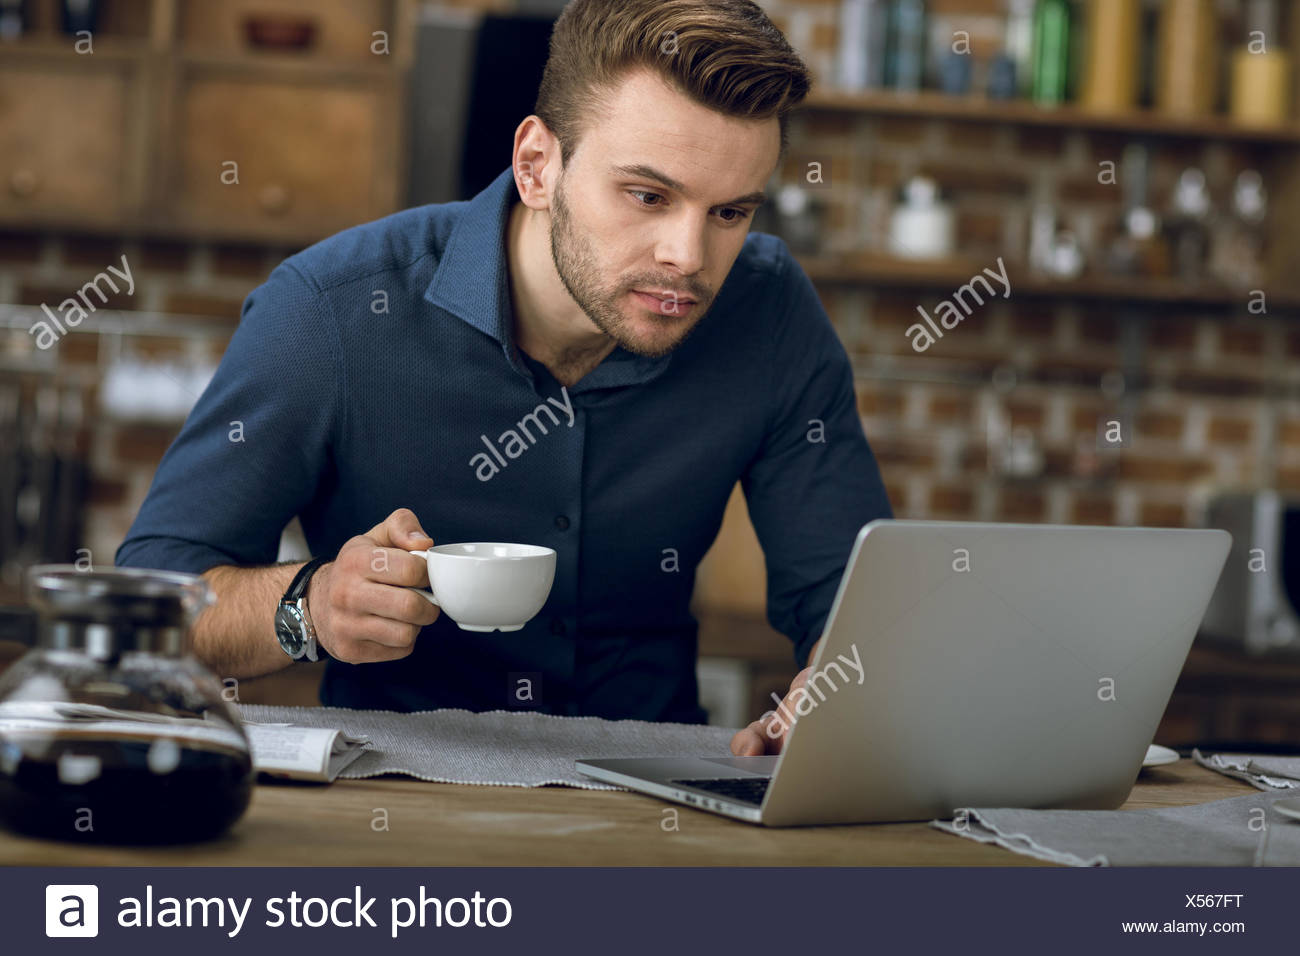 Concentrated young man using laptop while drinking coffee at home - Stock Image